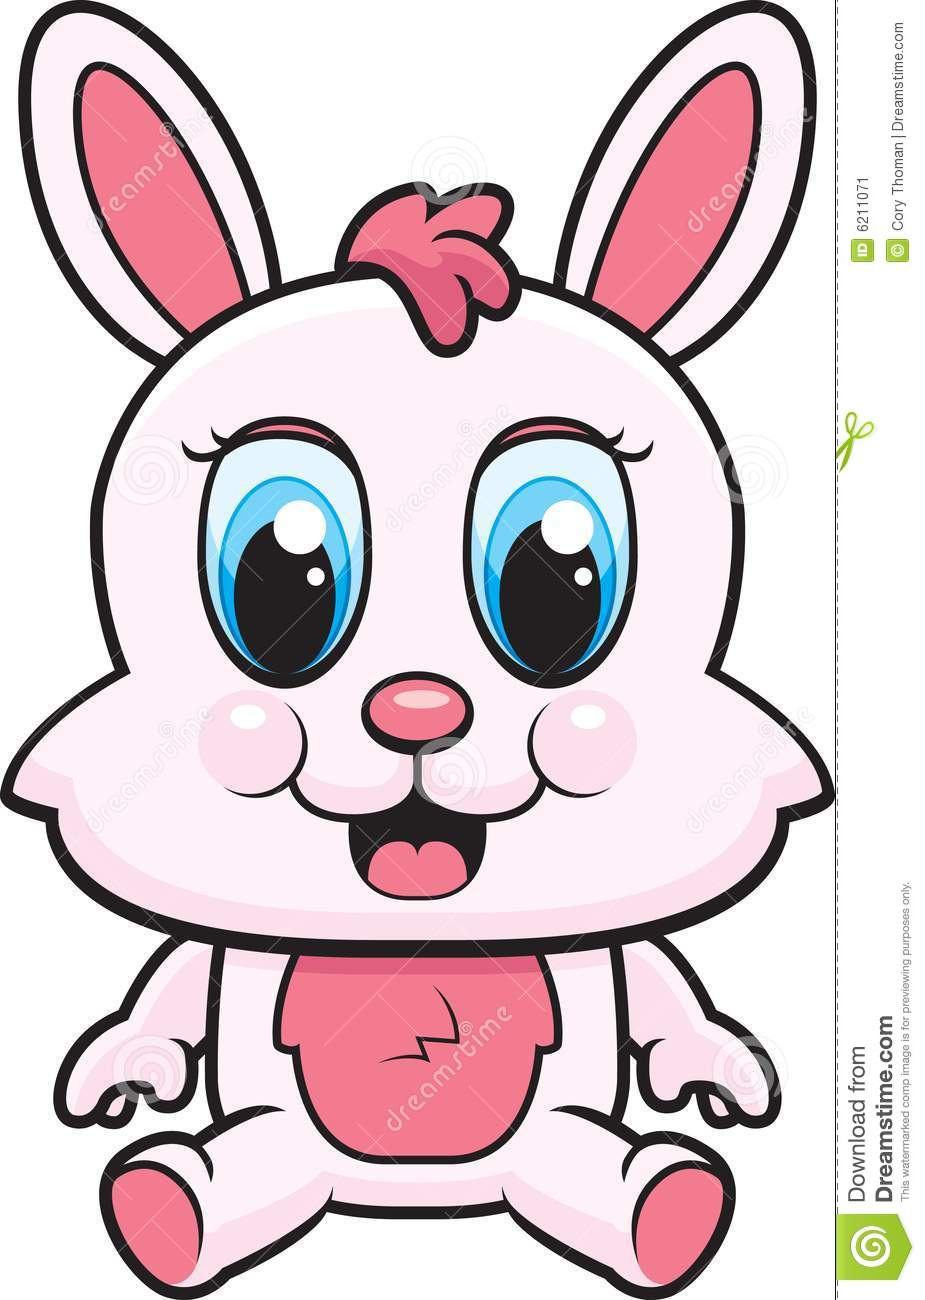 Coloring pages of cute baby bunnies